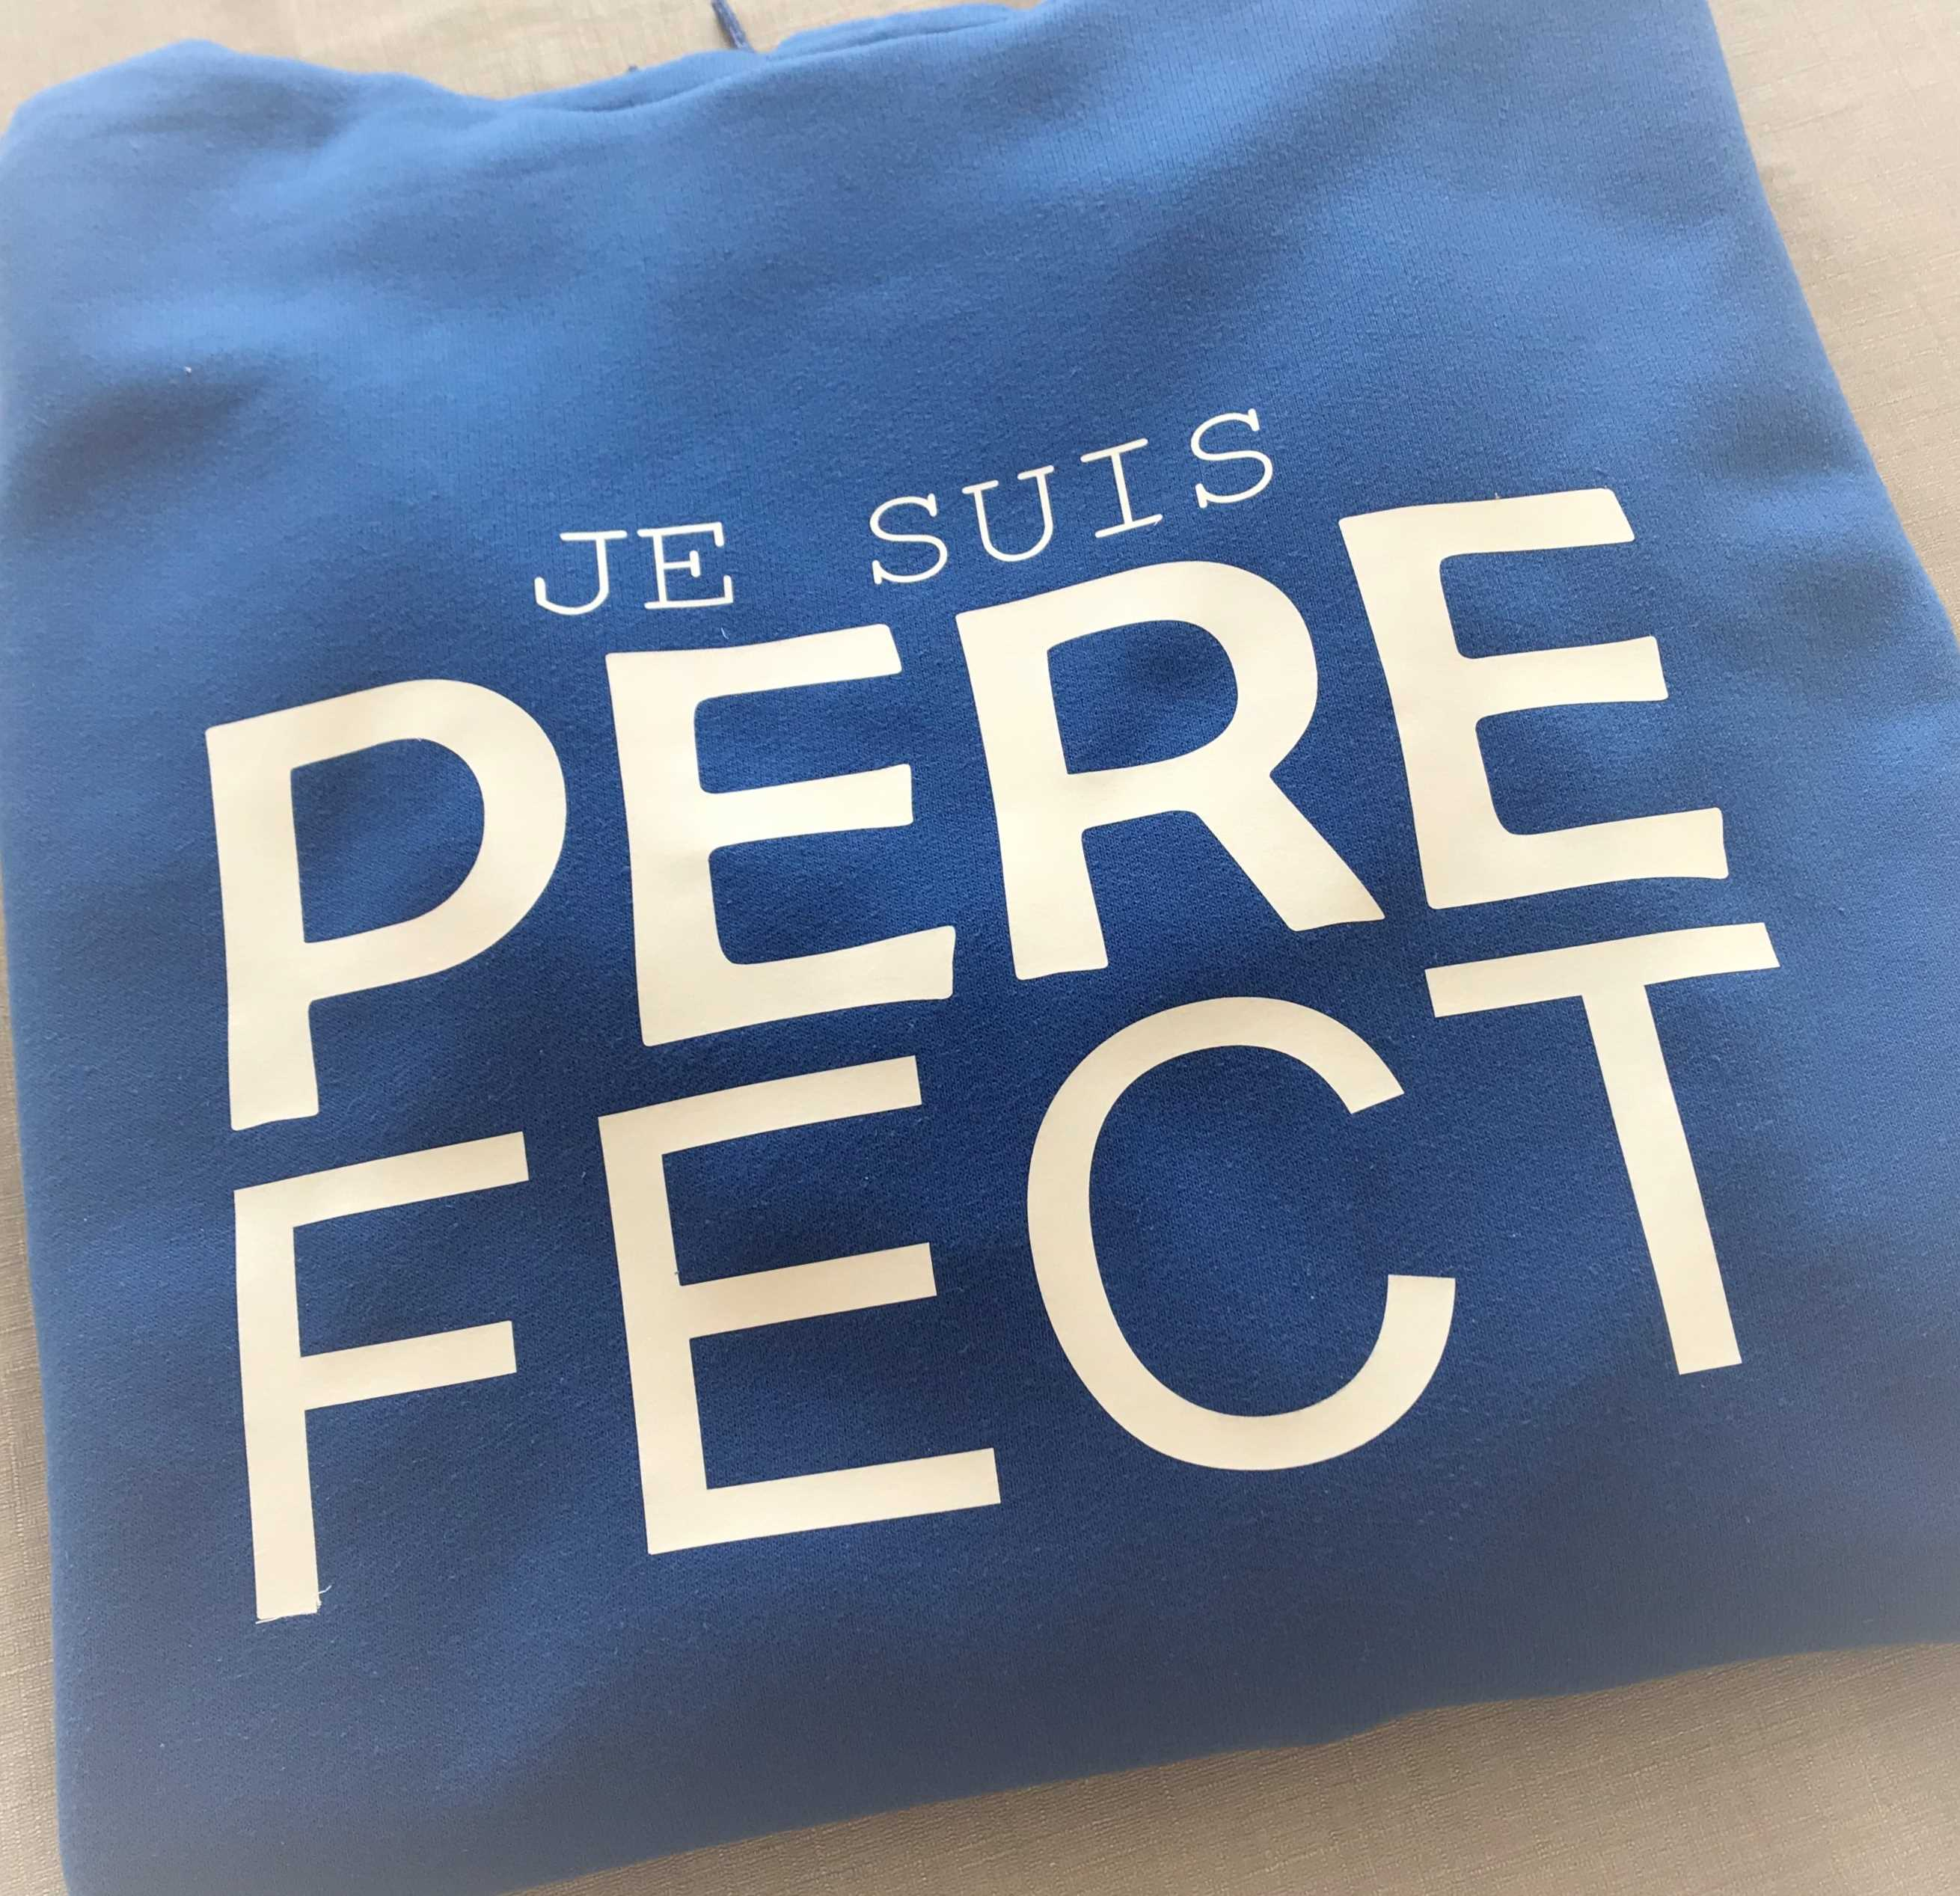 Je suis perefect